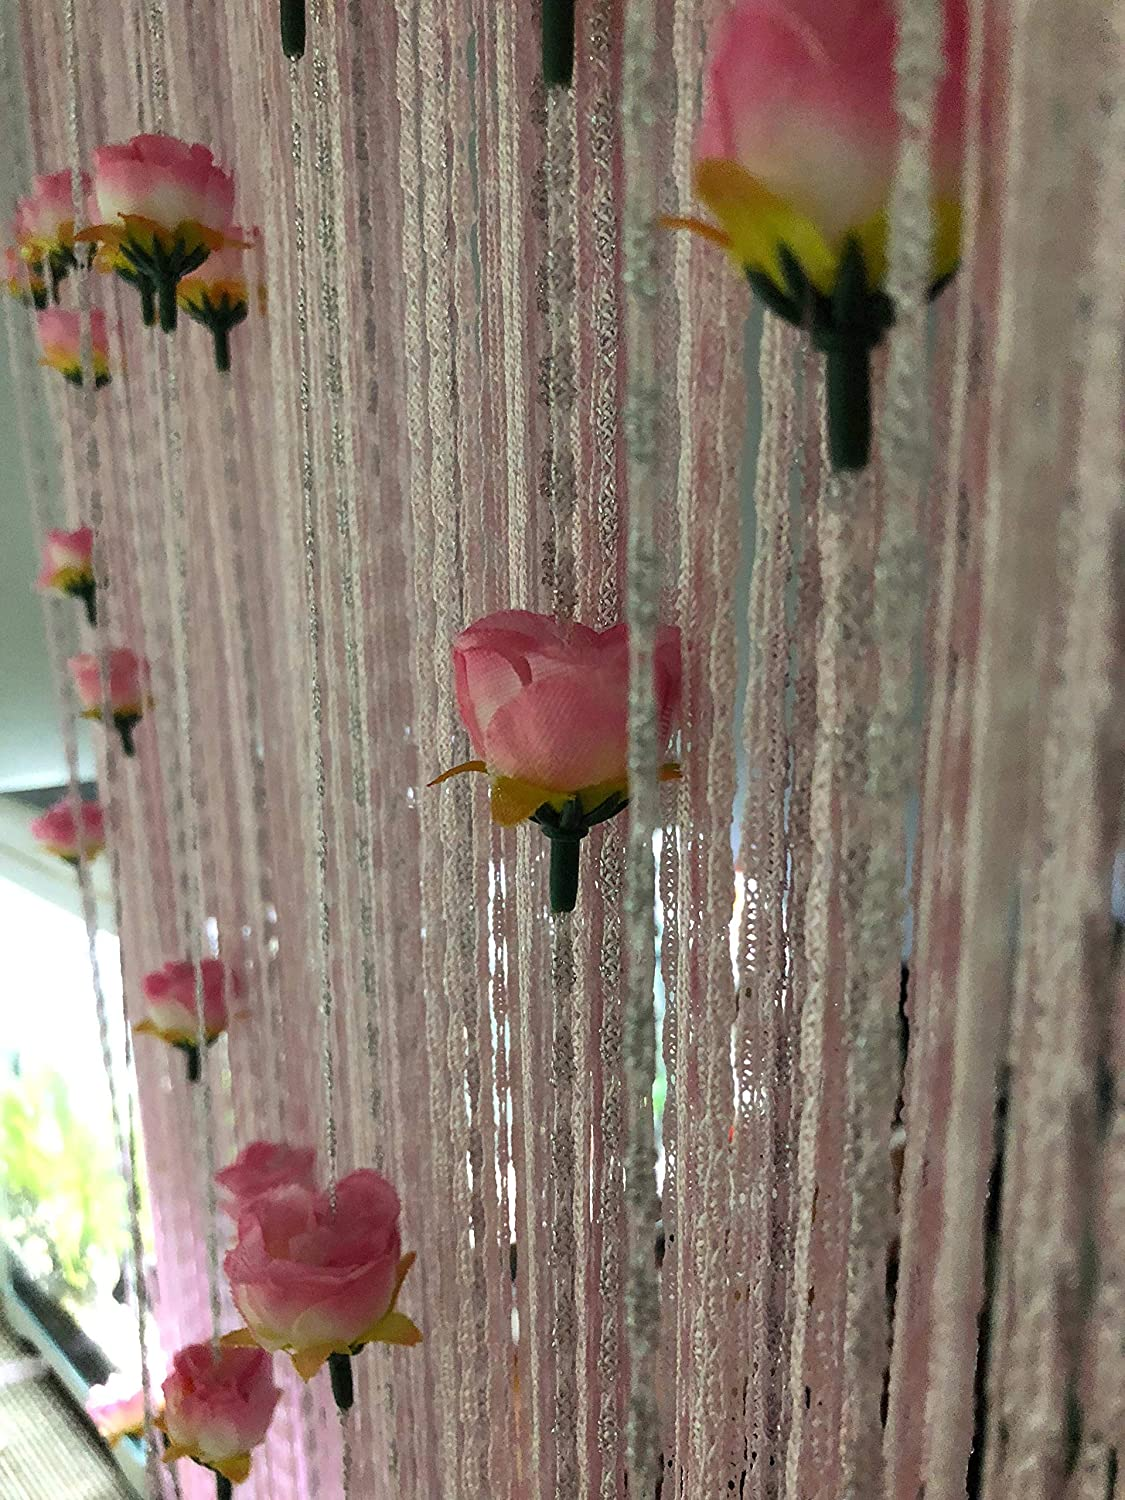 Hysenm Door String Curtains with Rose Flower 39x79 Inch Tassel Panel Home Décor for Doorways Dining Room Girls Bedroom Closet Doors Wedding Party, Pink 39x79 Inch